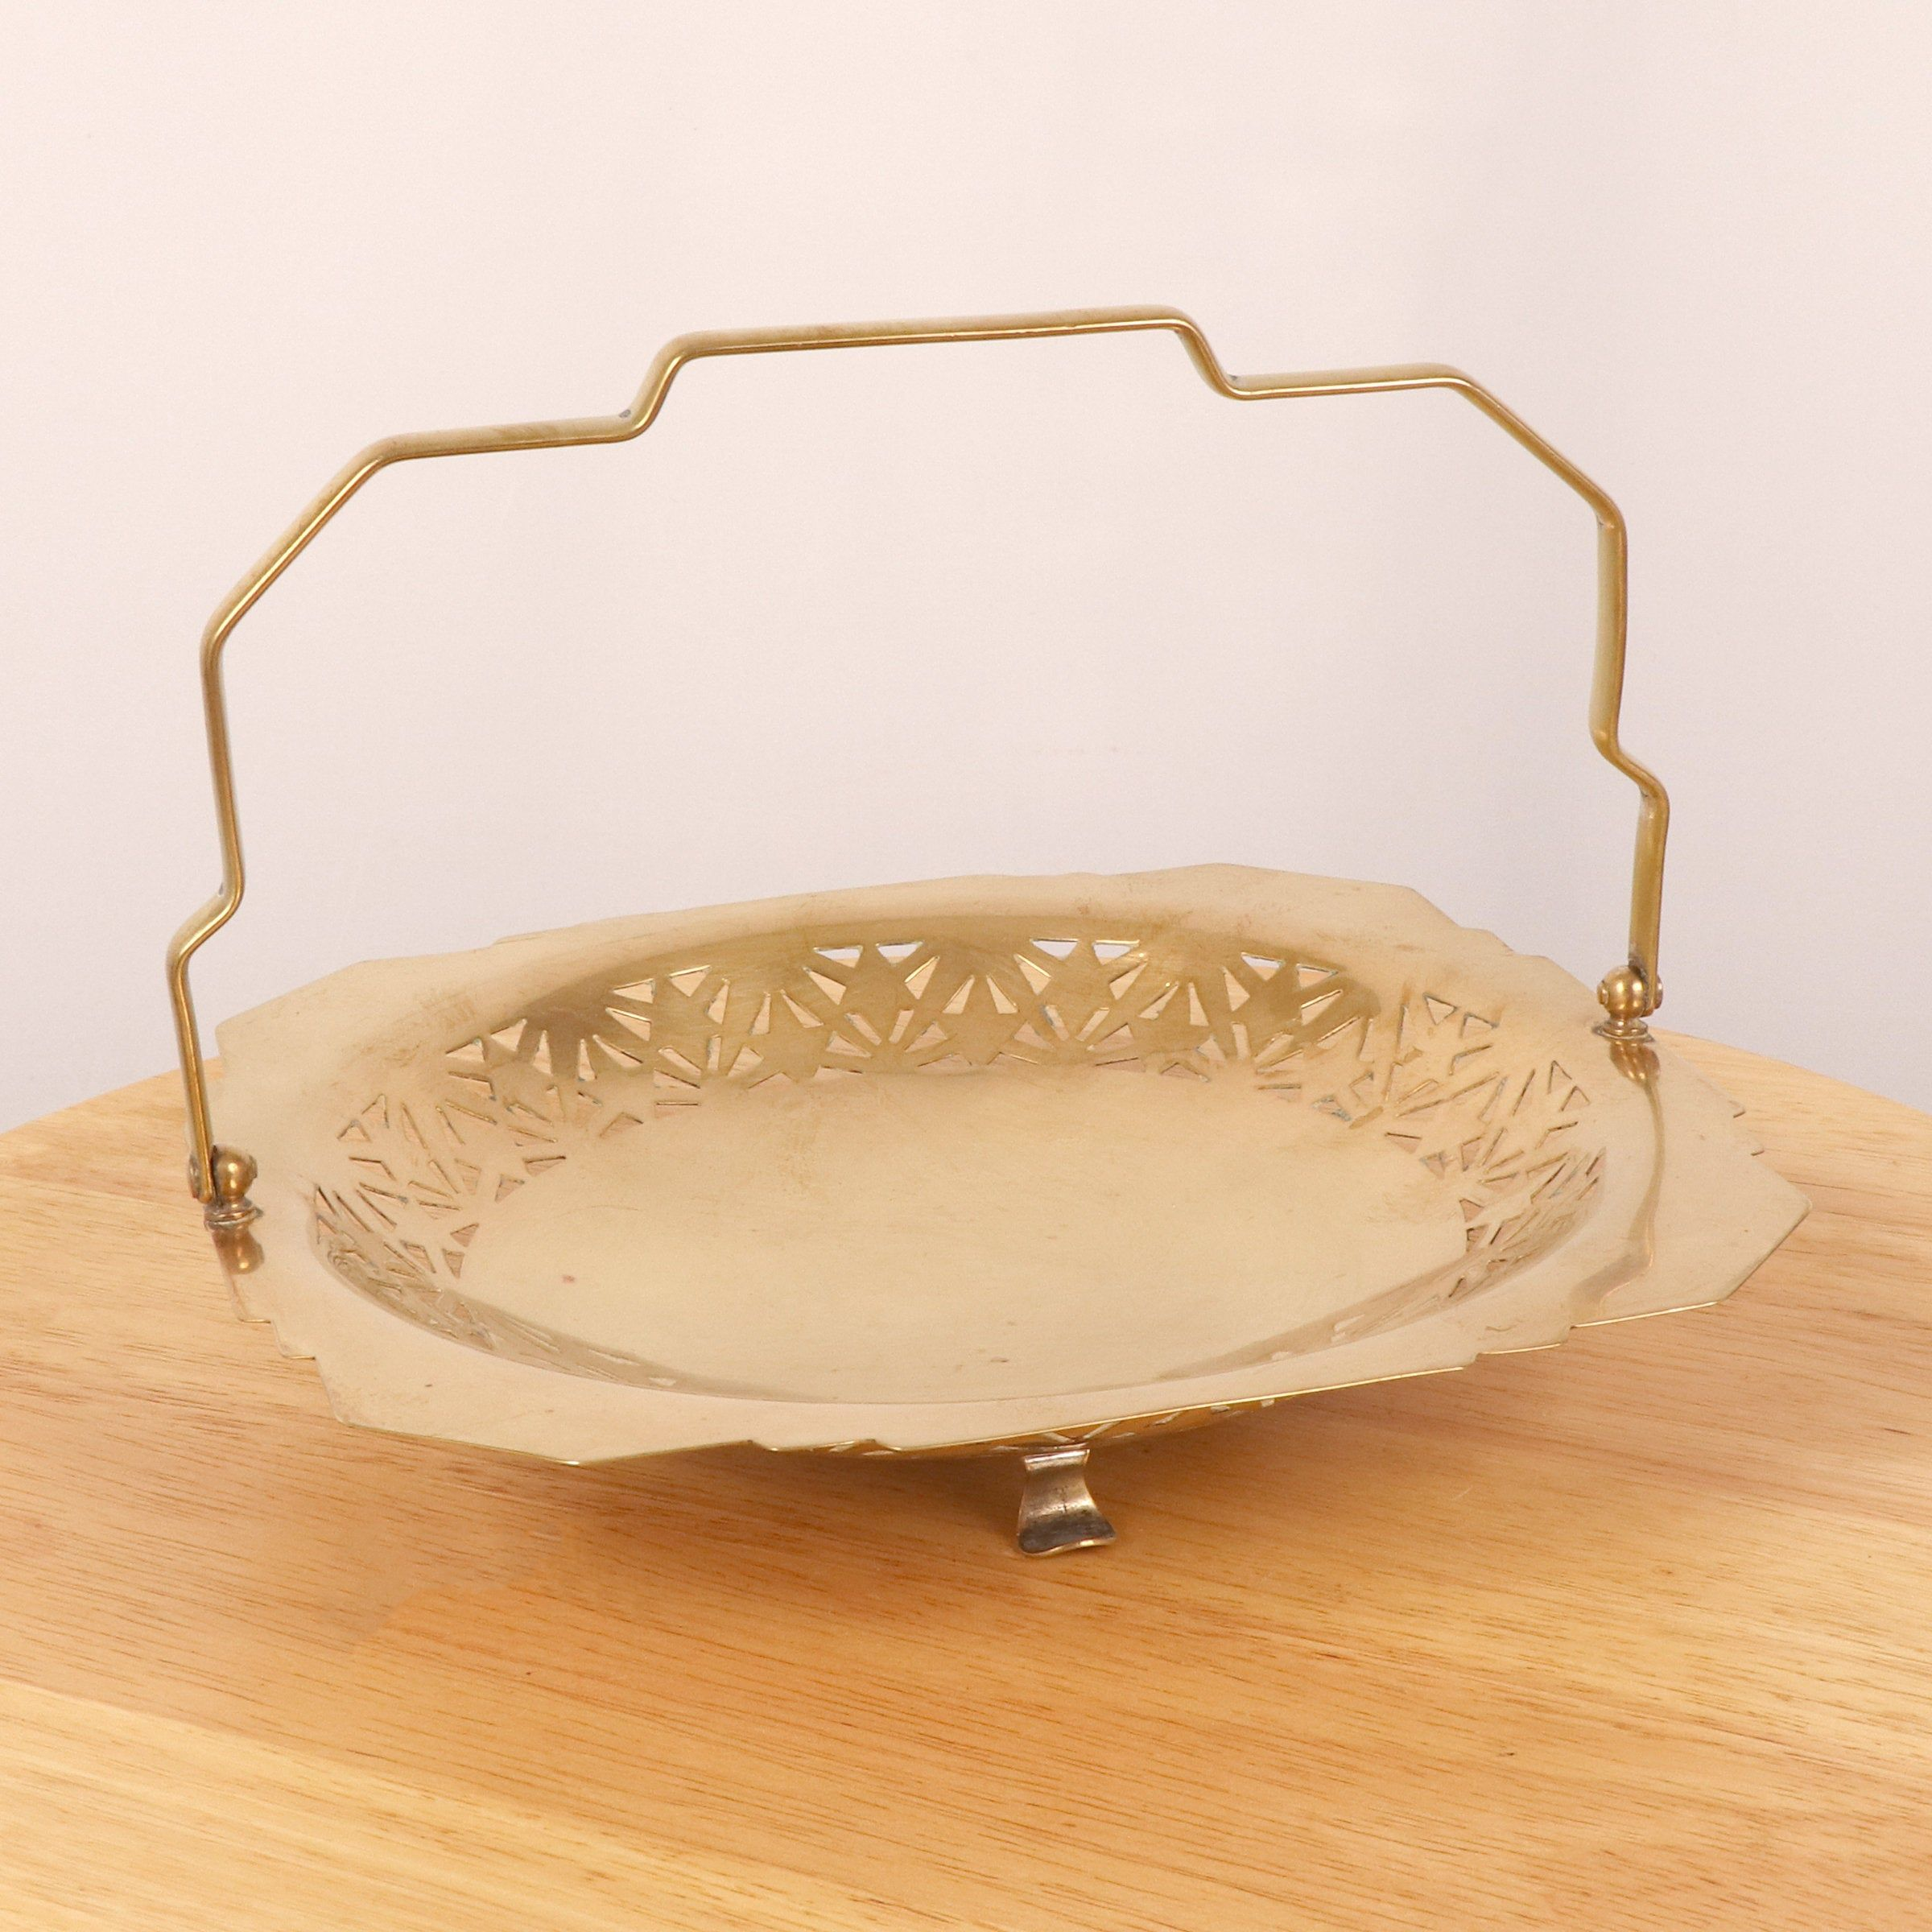 Bowl Dish Tray Vintage Solid Brass Simple Design Handle Elevated On 3 Legs By Ukamobile On Etsy In 2020 Solid Brass Sell Items Brass